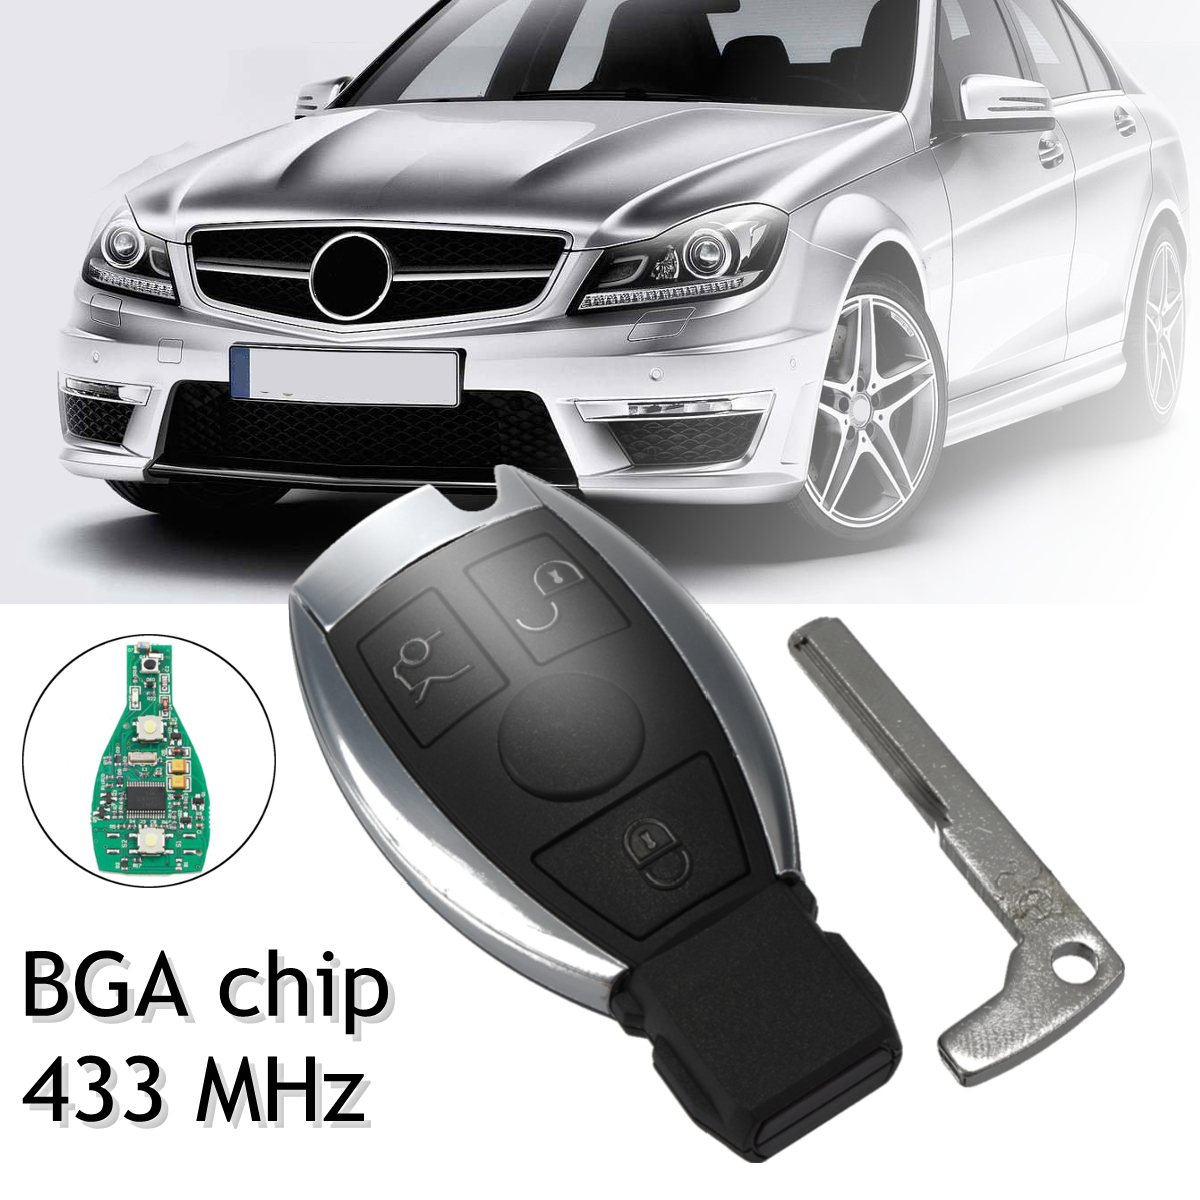 433MHz 3 Buttons Remote Key Replacement Entry Fob Transmitter for Mercedes/Benz A E S G CLK SLK ML 2000+ w/ BGA Chip Uncut Blade